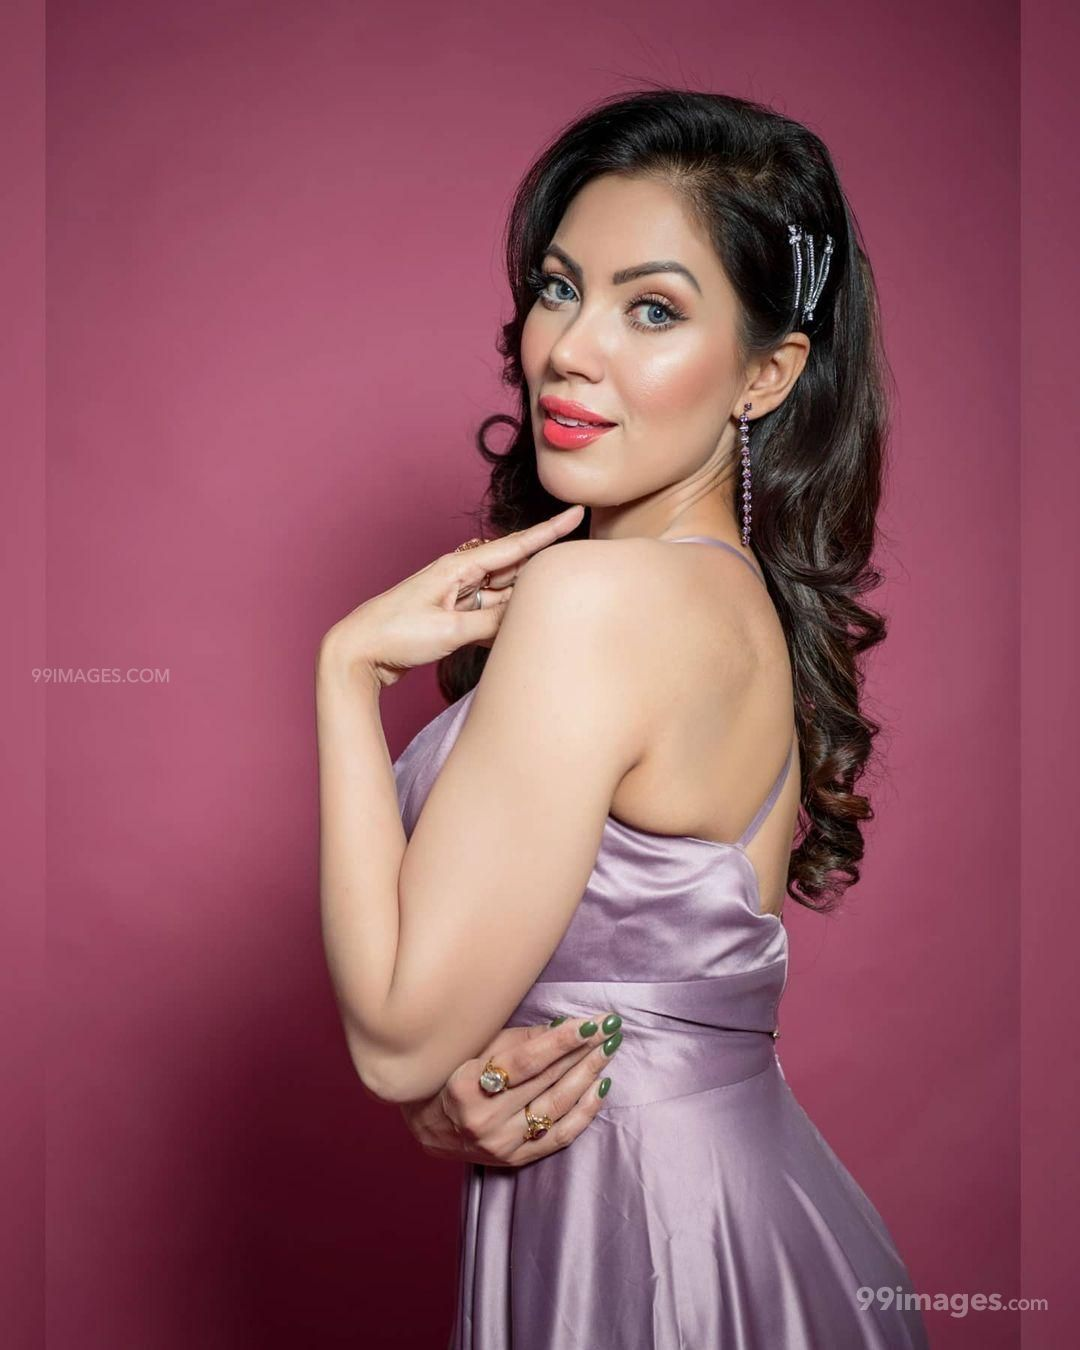 Munmun Dutta HD Wallpapers (Desktop Background / Android / iPhone) (1080p, 4k) (264742) - Munmun Dutta